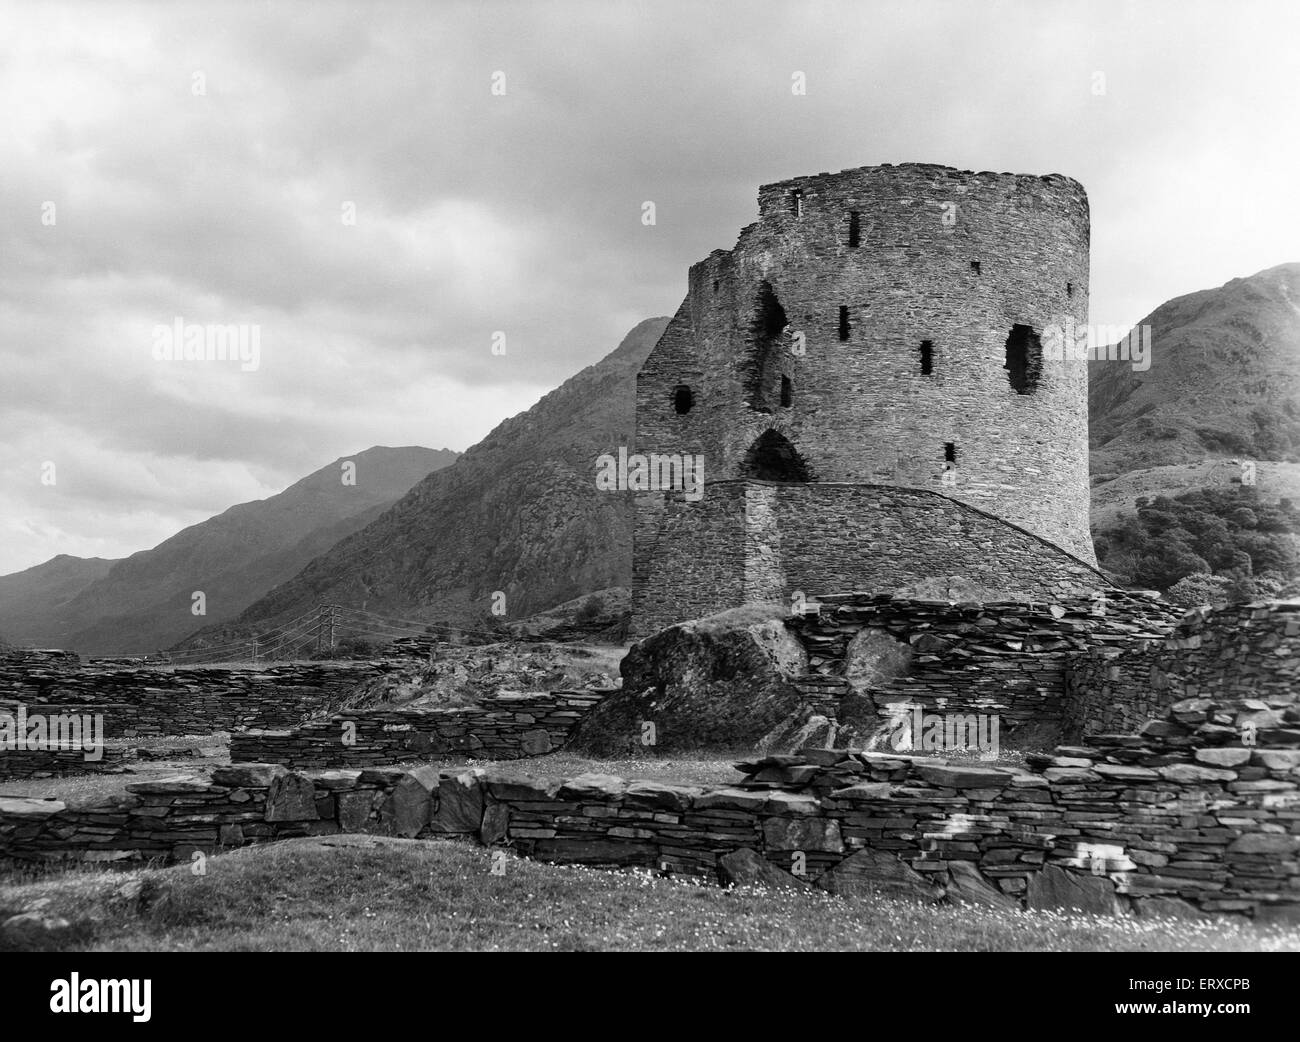 Dolbadarn Castle,  located at the base of the Llanberis Pass, in North Wales, Gwynedd ,5th August 1959. - Stock Image